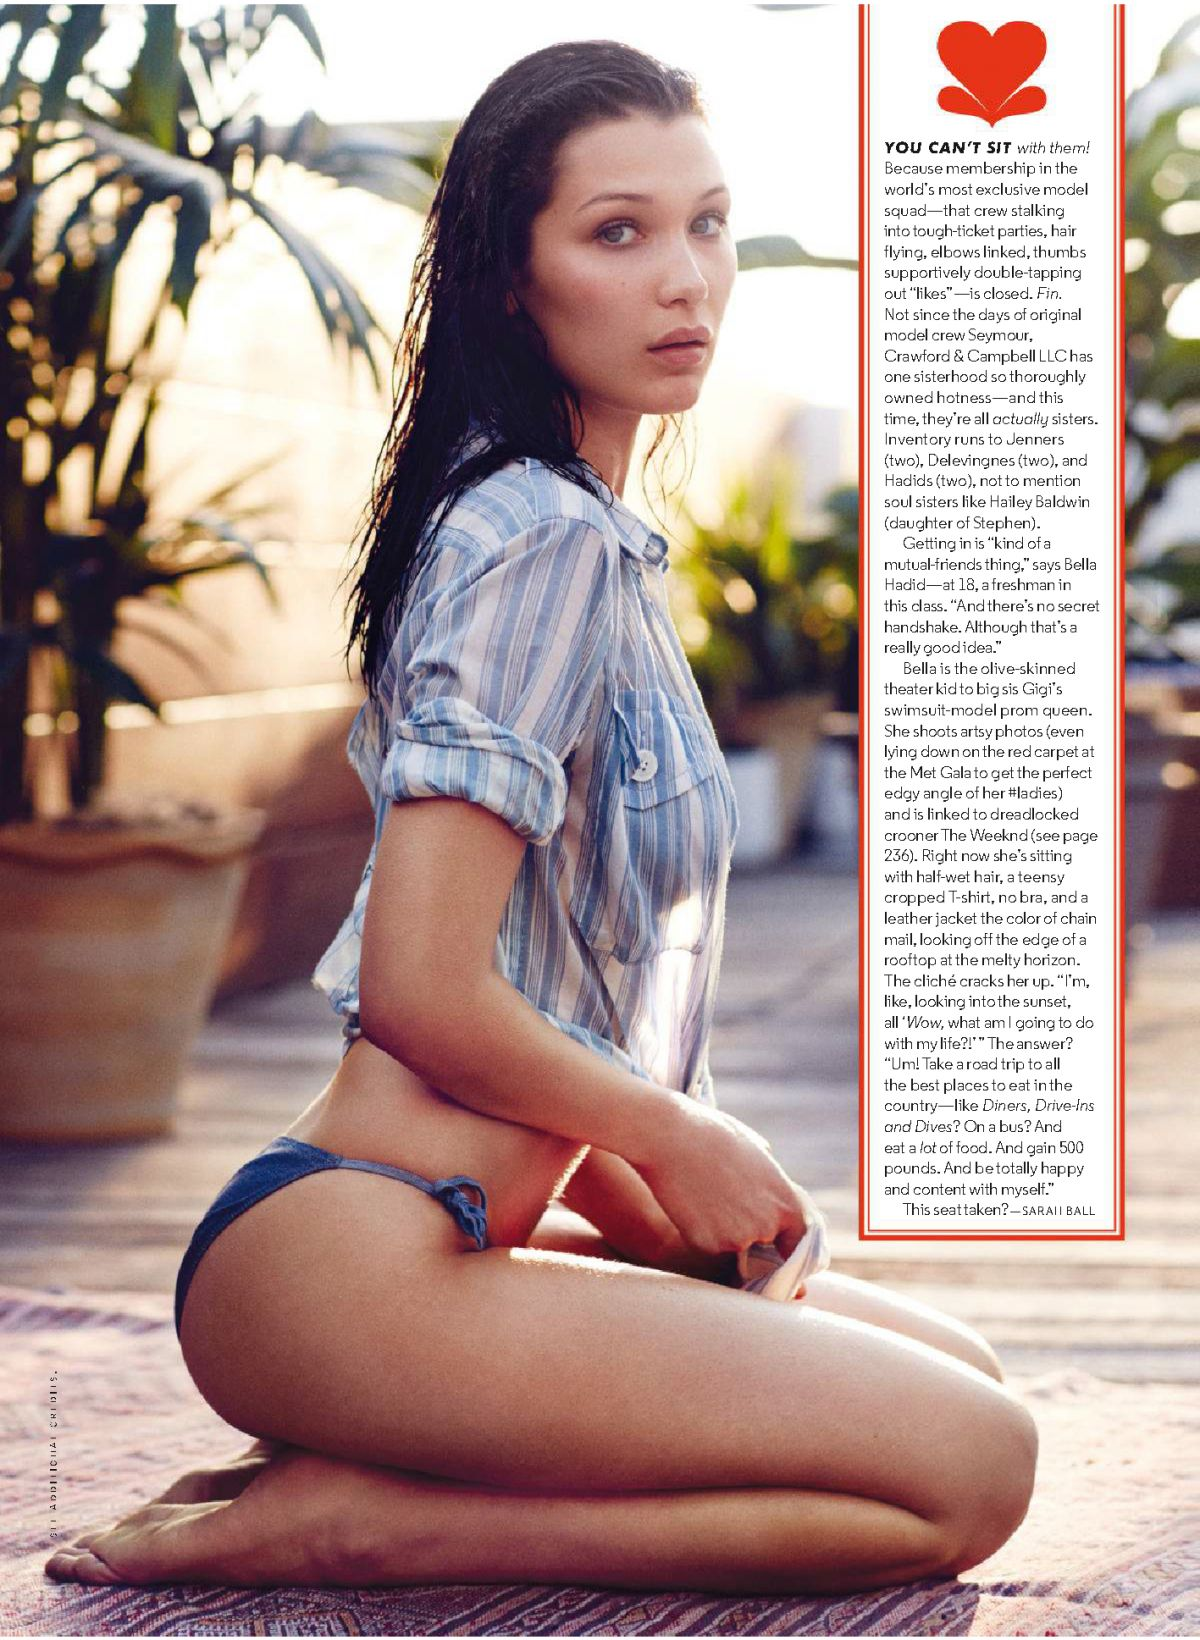 2015 Gq Men Of The Year Party In Los Angeles: BELLA HADID In GQ Magazine, September 2015 Issue